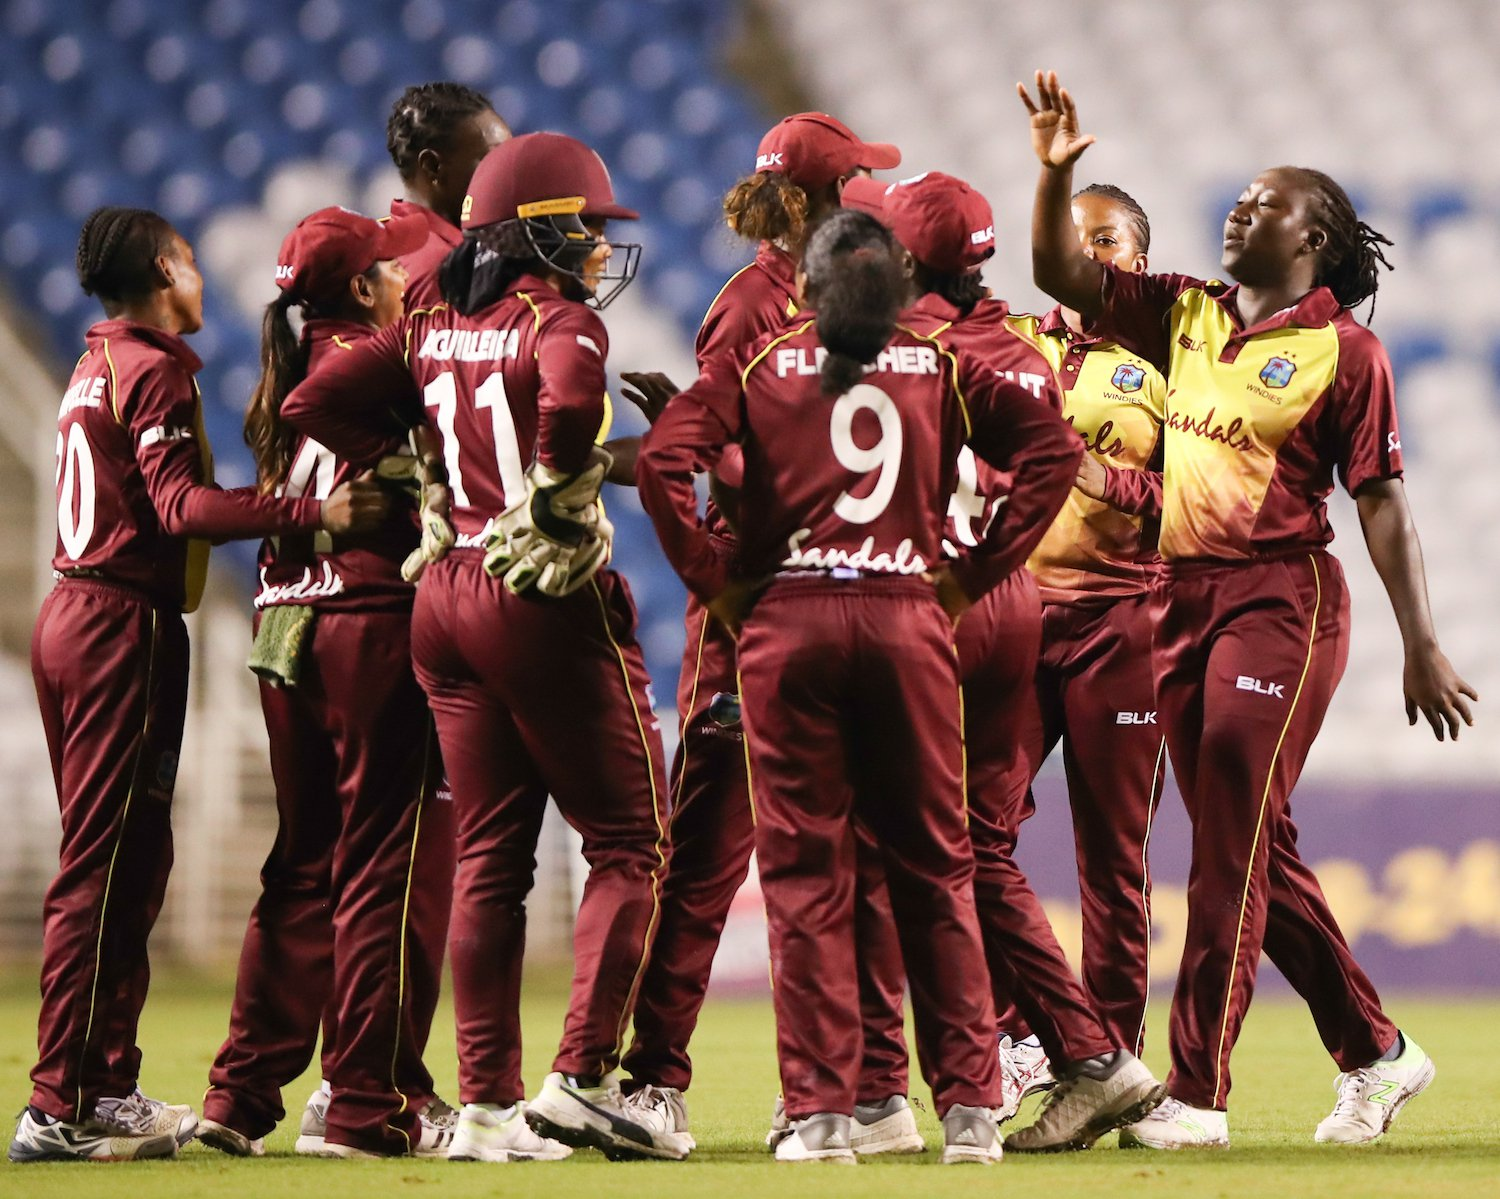 Windies%20Women.jpg